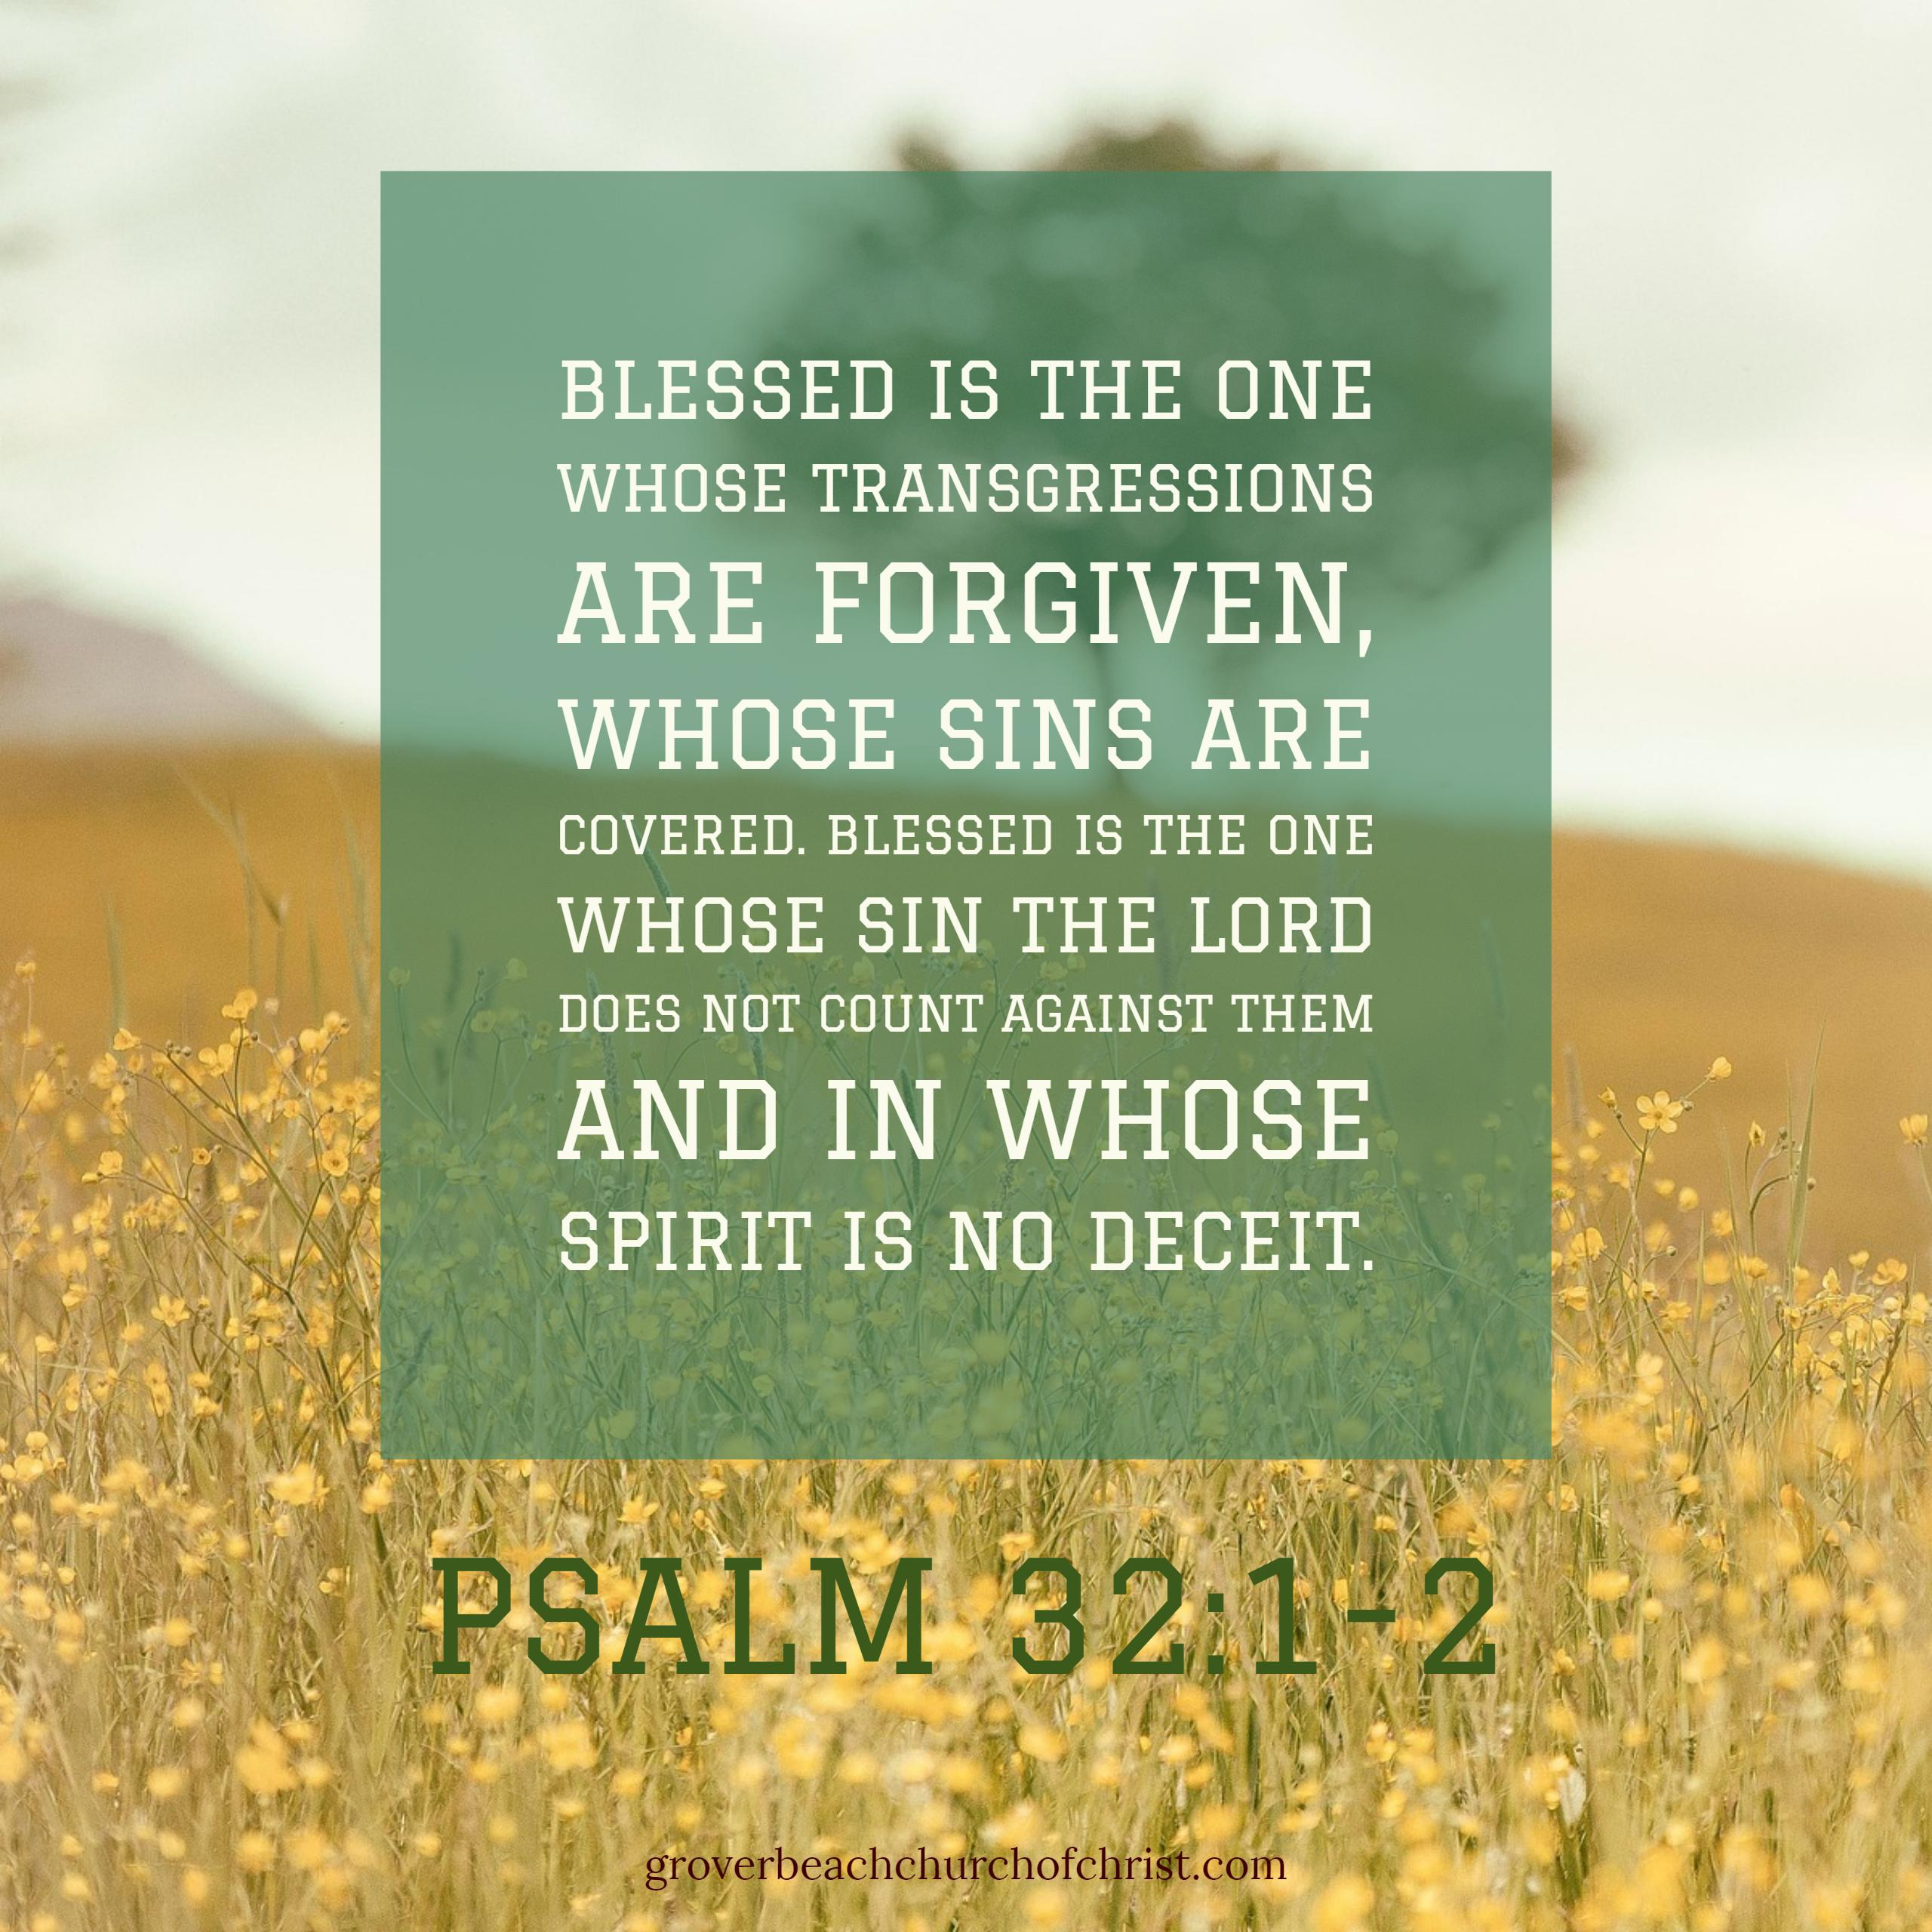 proverbs-32:1-2-blessed-is-the-one-whose-transgressions